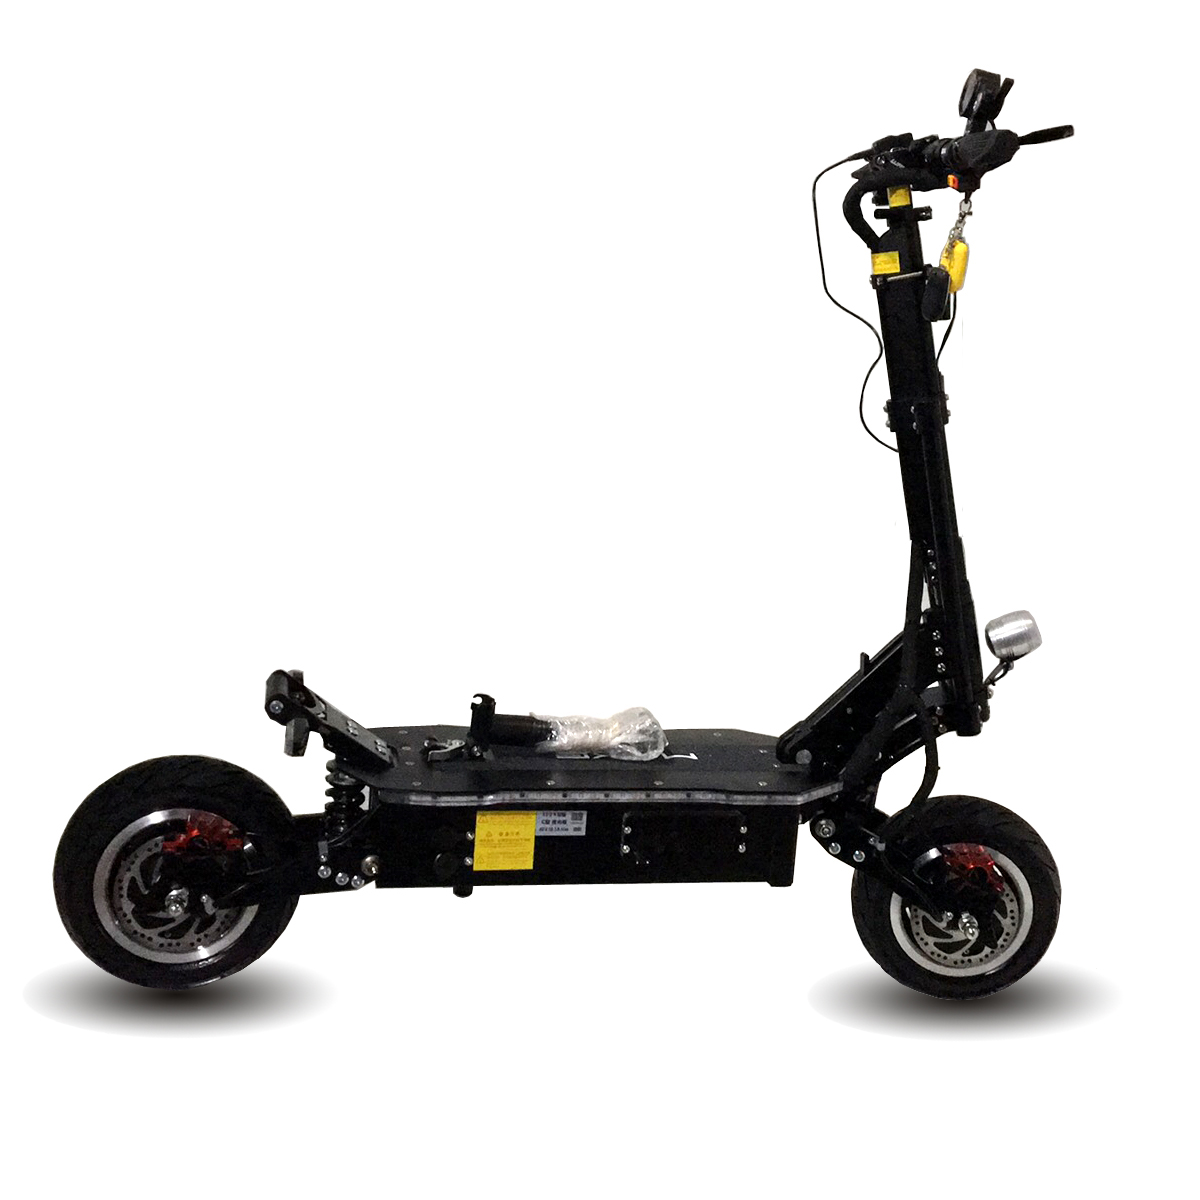 HOT 60v 5000W dual motor powerful 11 inch fat tire off road electric scooter with removable seat